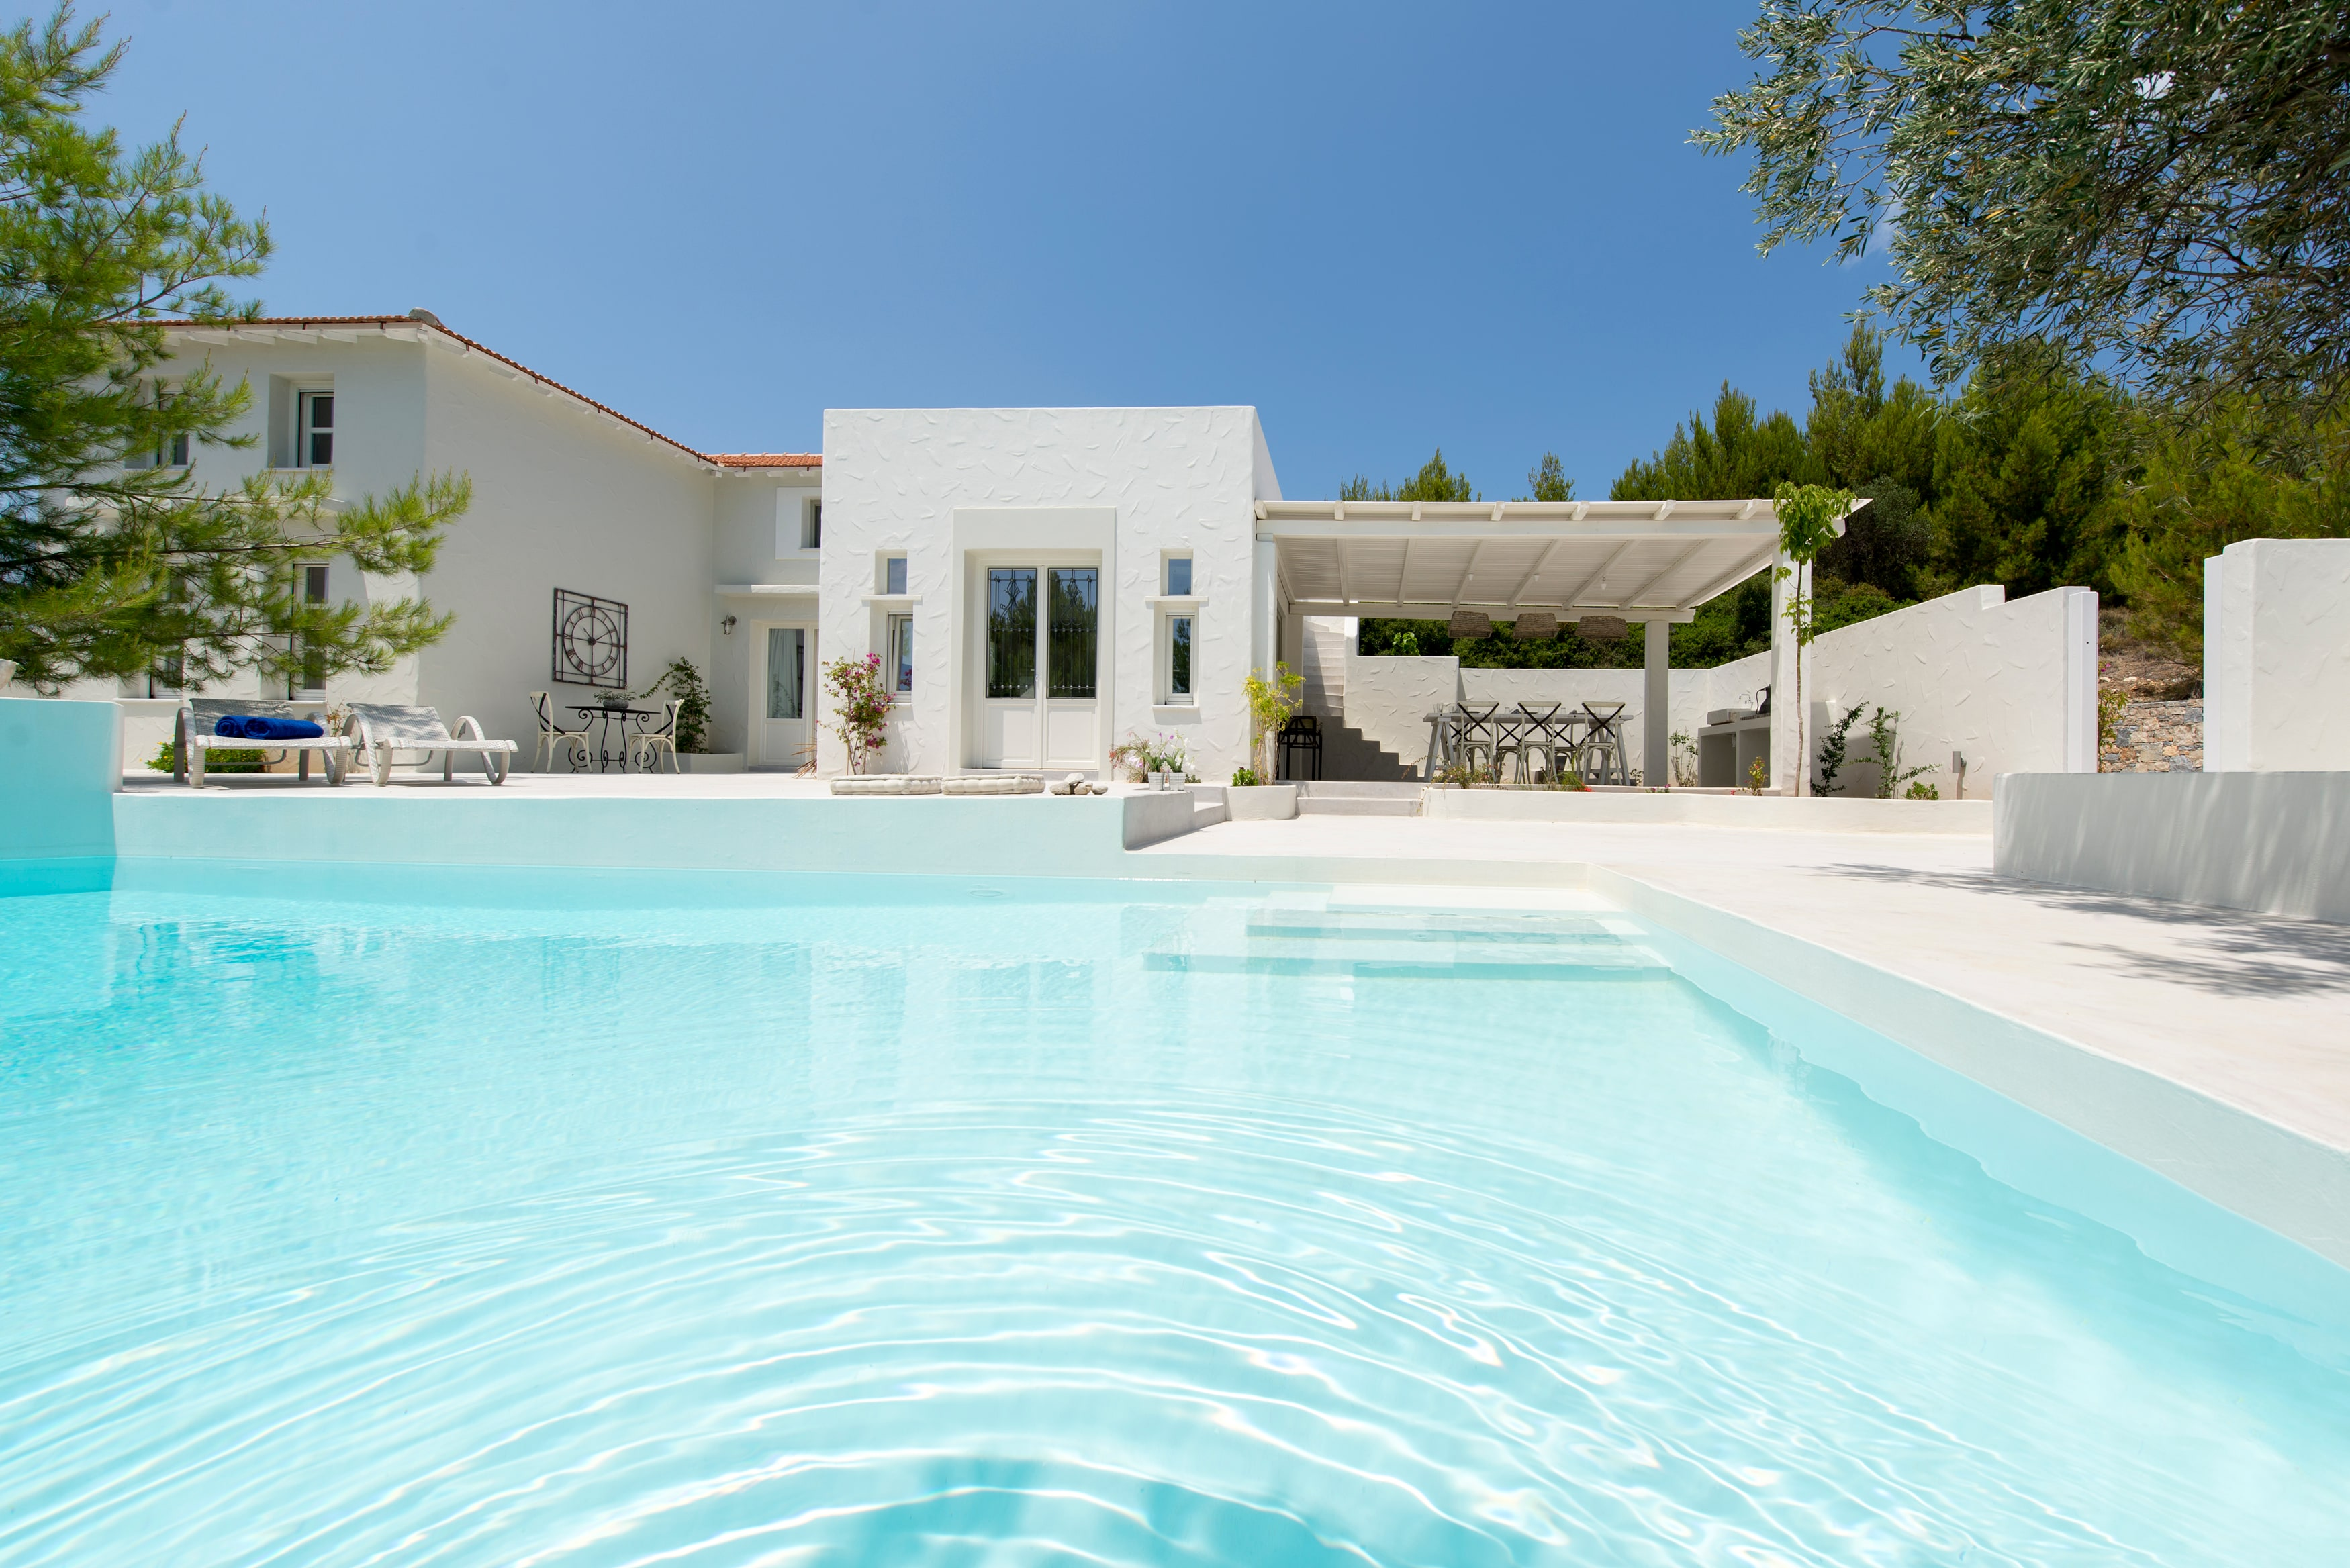 Property Image 2 - Stunning Luxury Villa with Private Pool